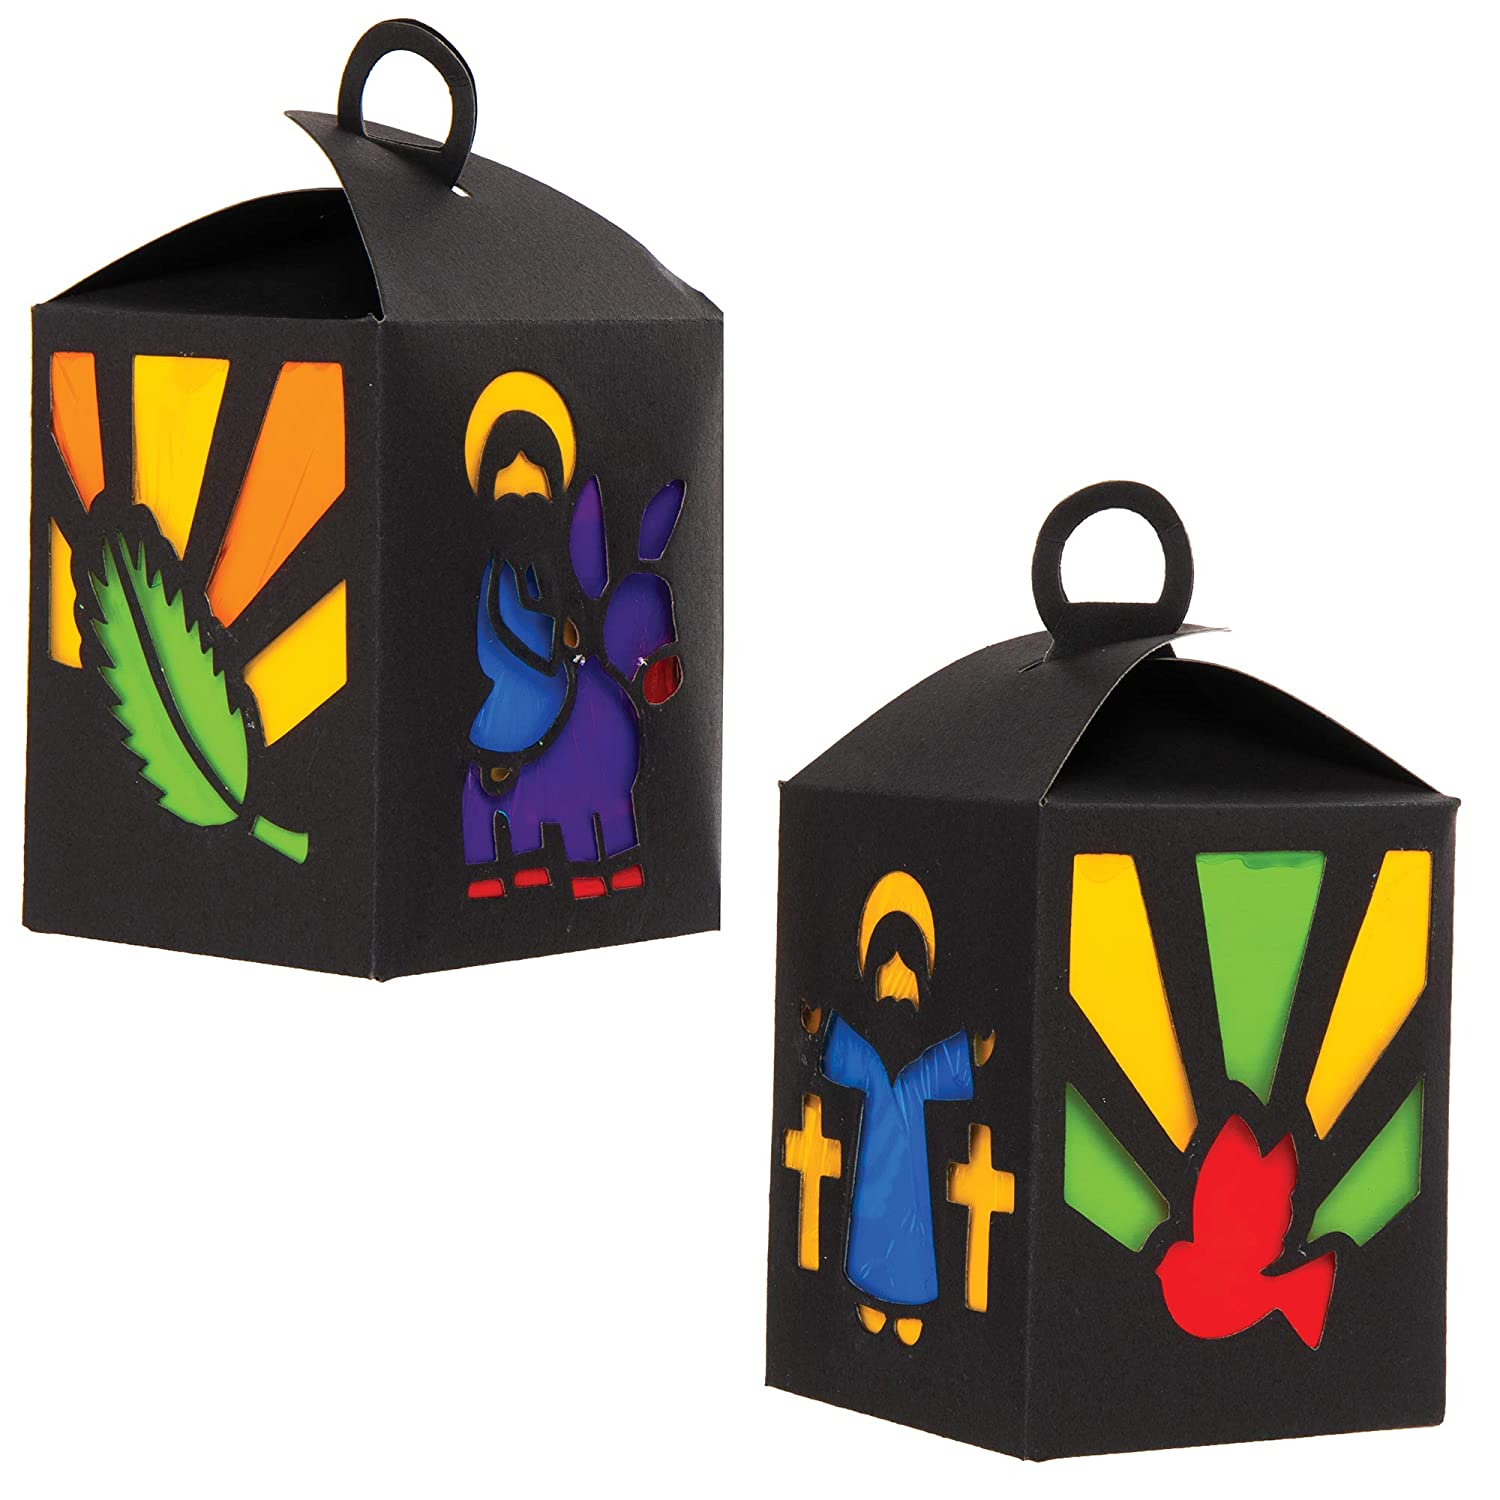 AT559 4 Pack Baker Ross Holy Week Lantern Kits /— Creative Easter Art and Craft Supplies for Kids to Make and Decorate